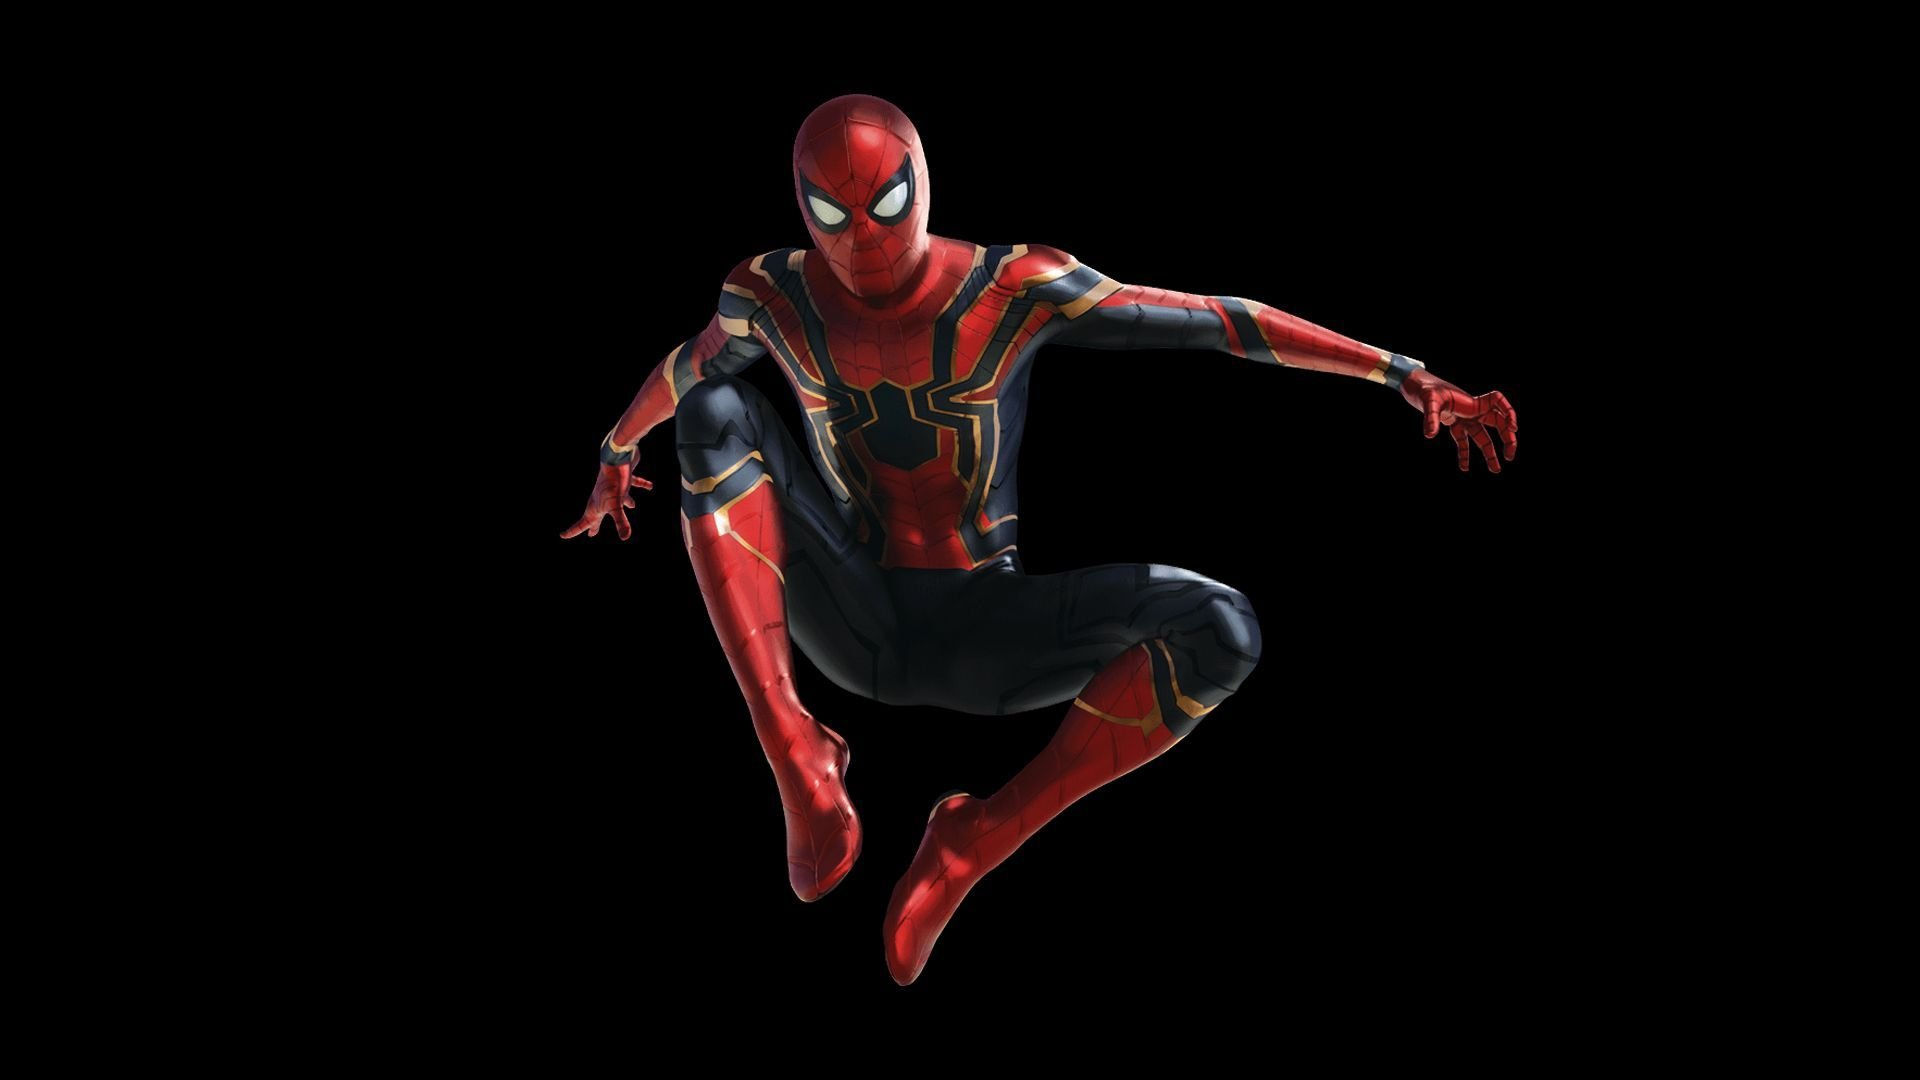 Spider Man Infinity War Wallpapers Top Free Spider Man